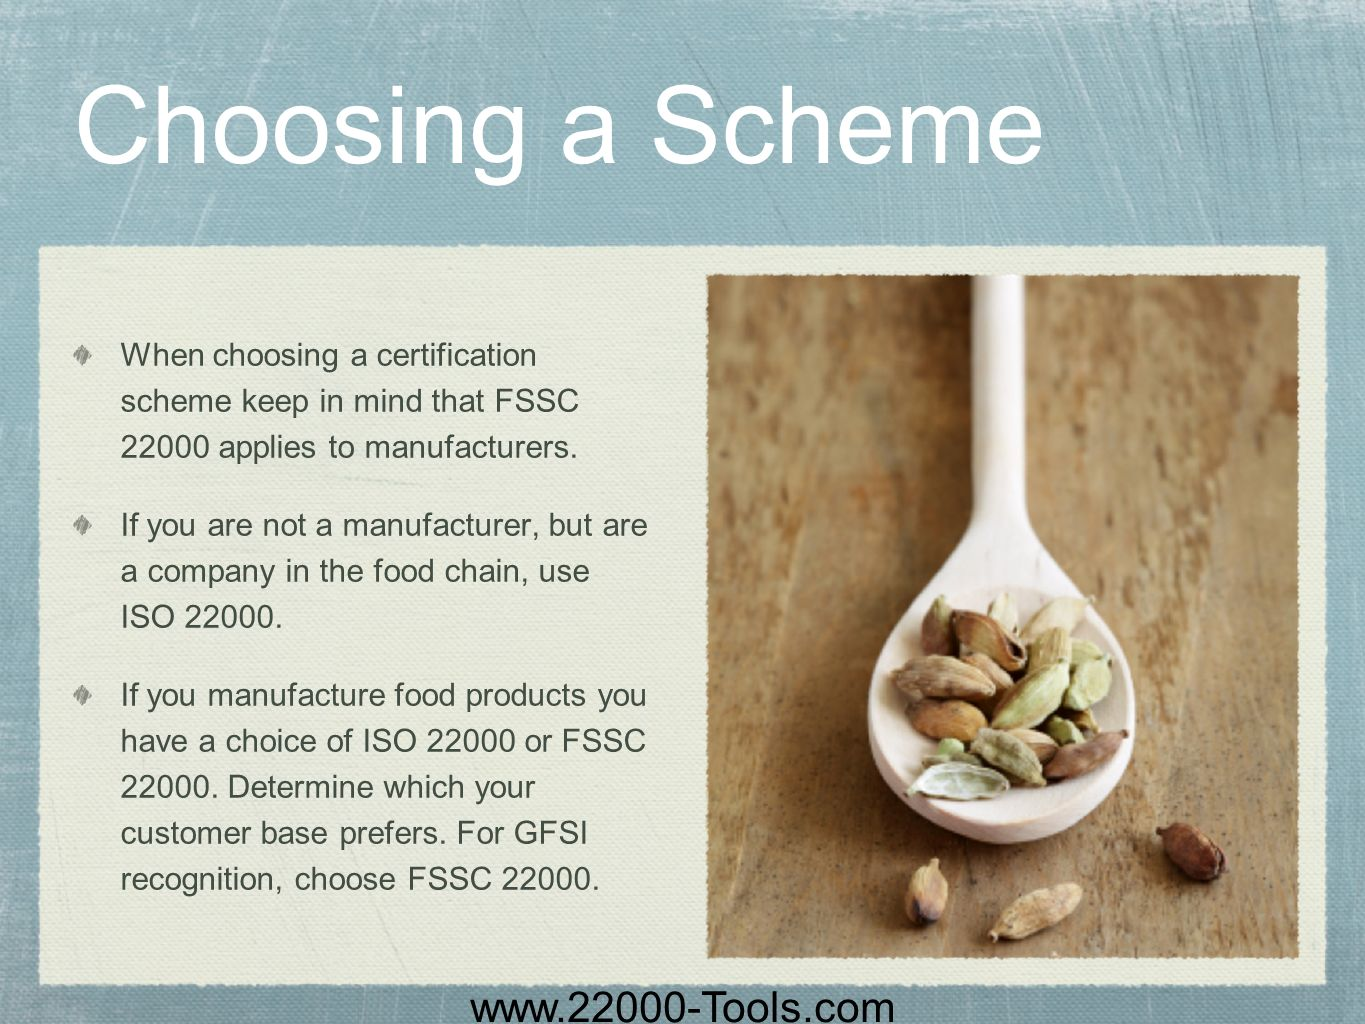 Choosing a Scheme When choosing a certification scheme keep in mind that FSSC 22000 applies to manufacturers.